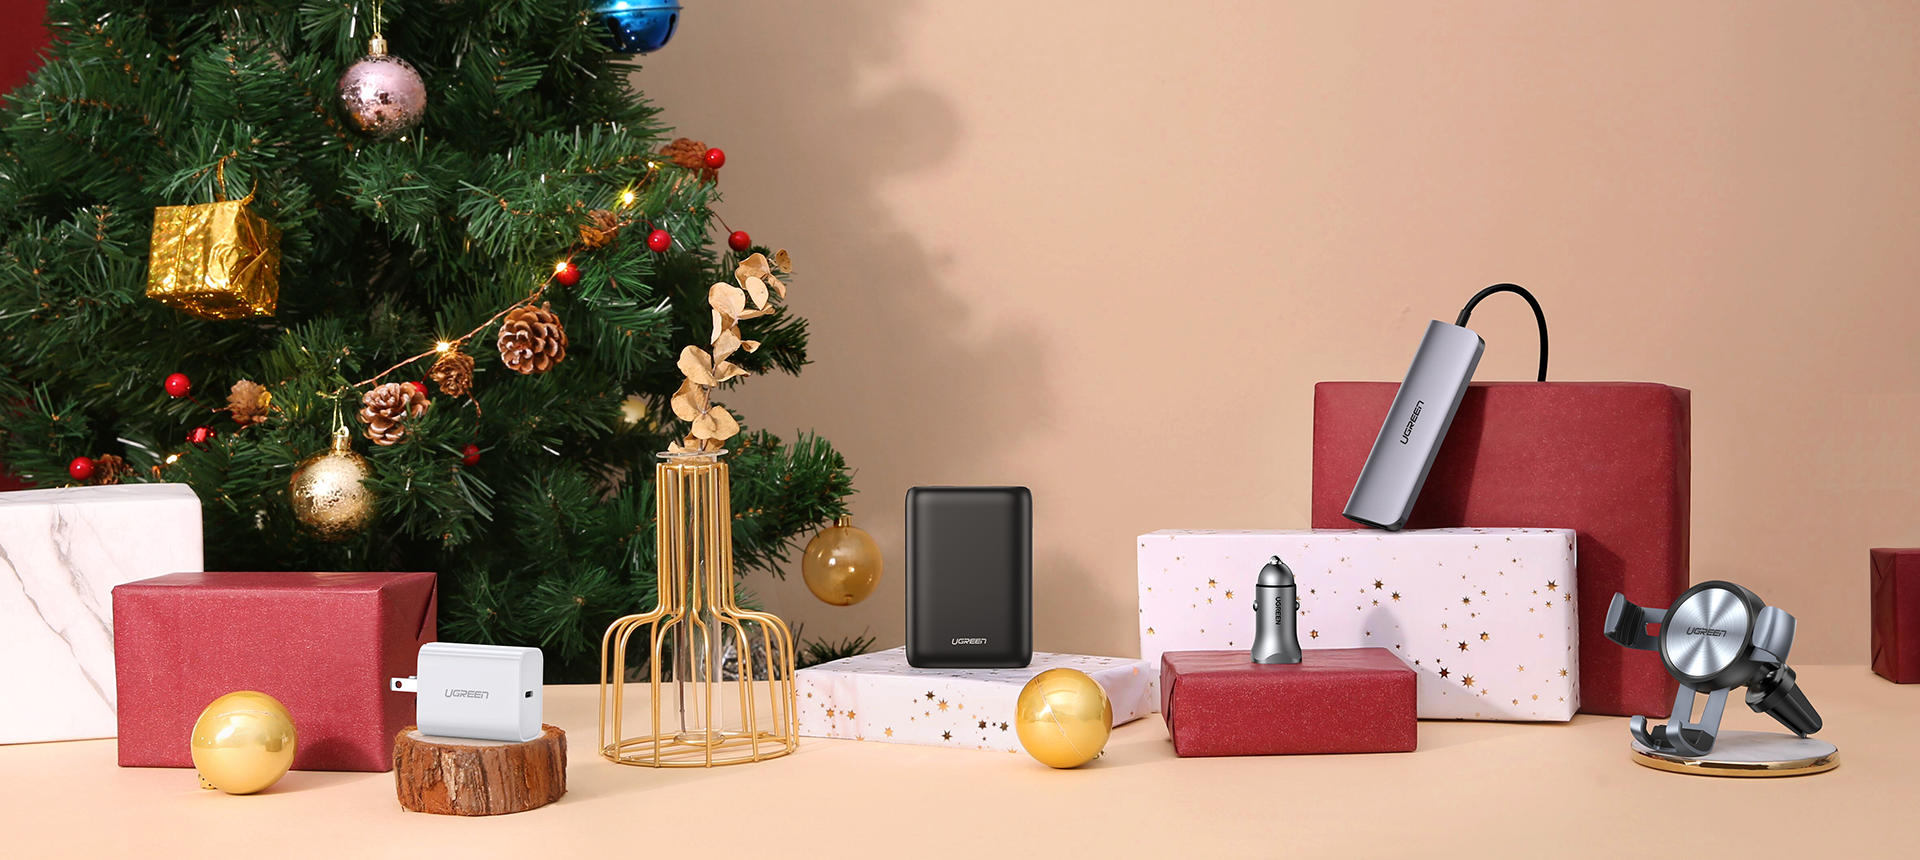 6 Of The Best UGREEN Products To Gift This Christmas Season 18